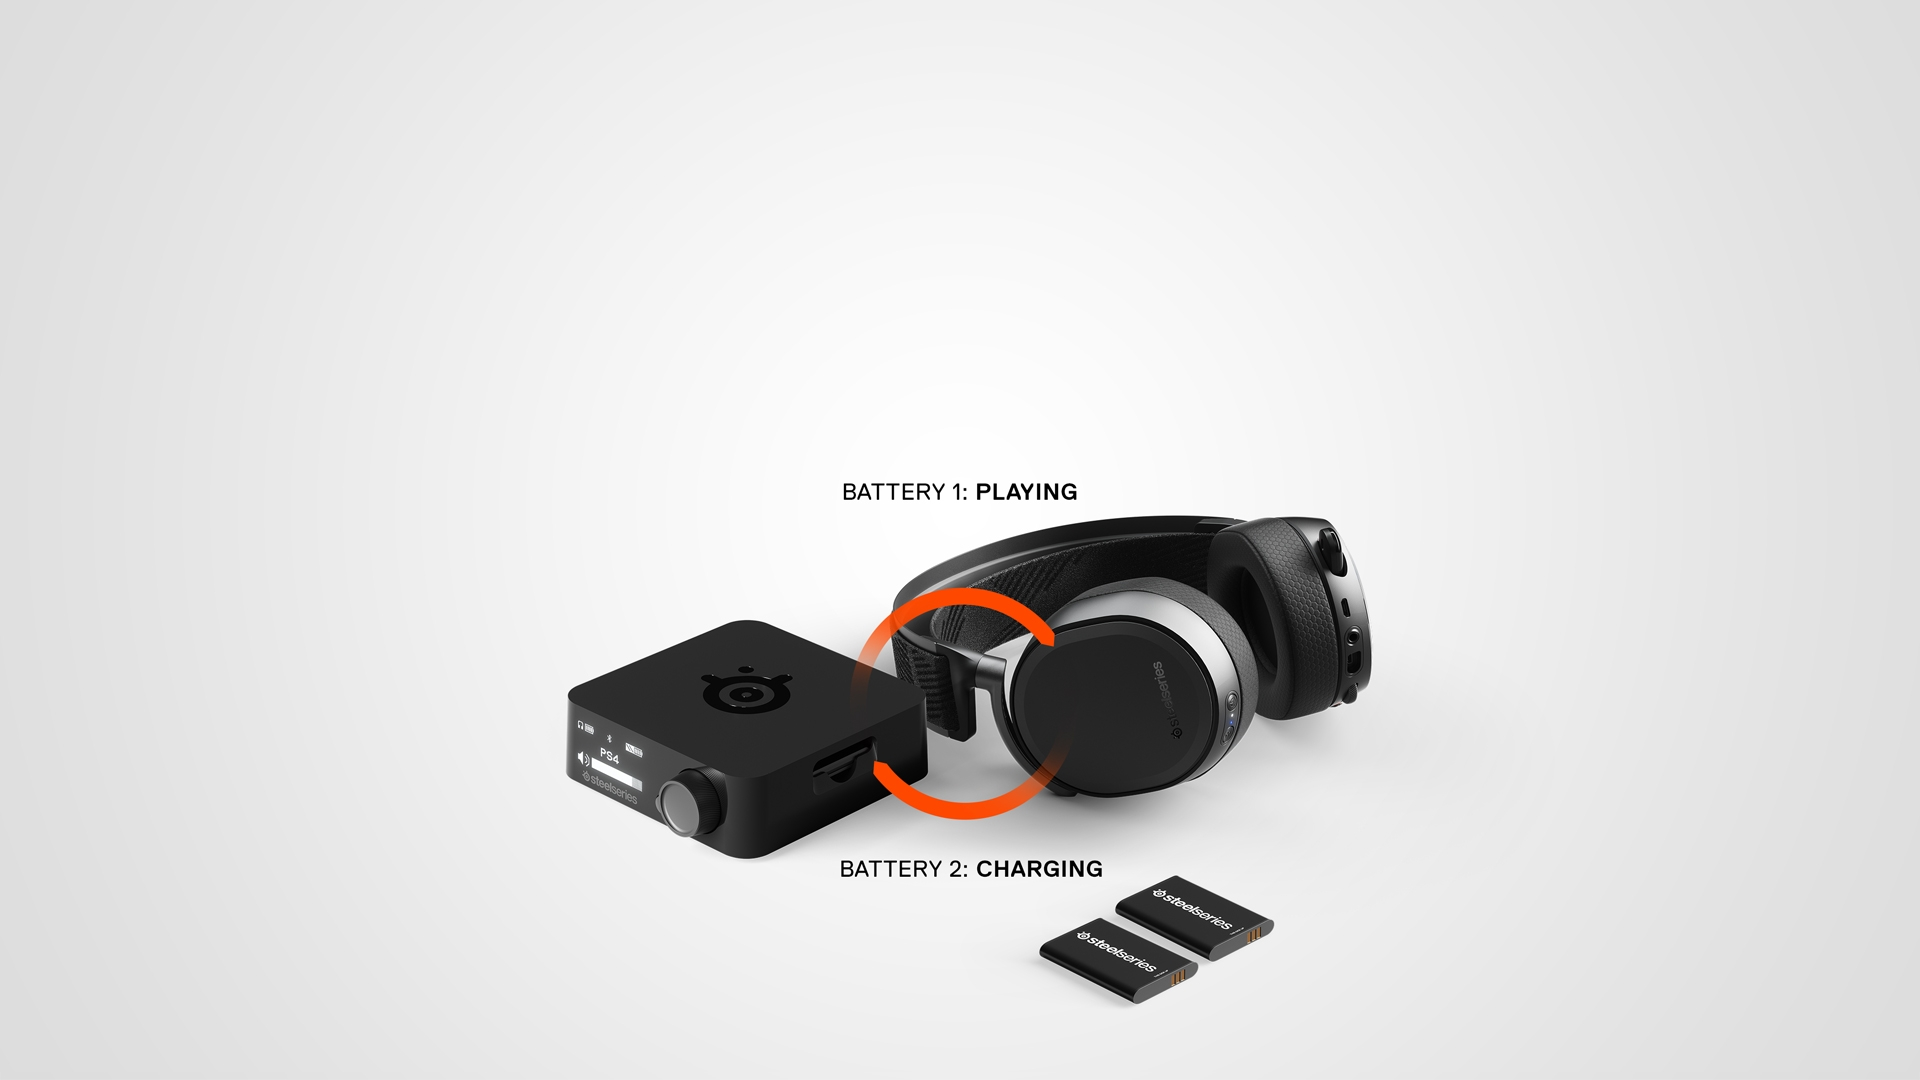 SteelSeries Arctis Pro headset lying down next to its base station and two rechargeable batteries